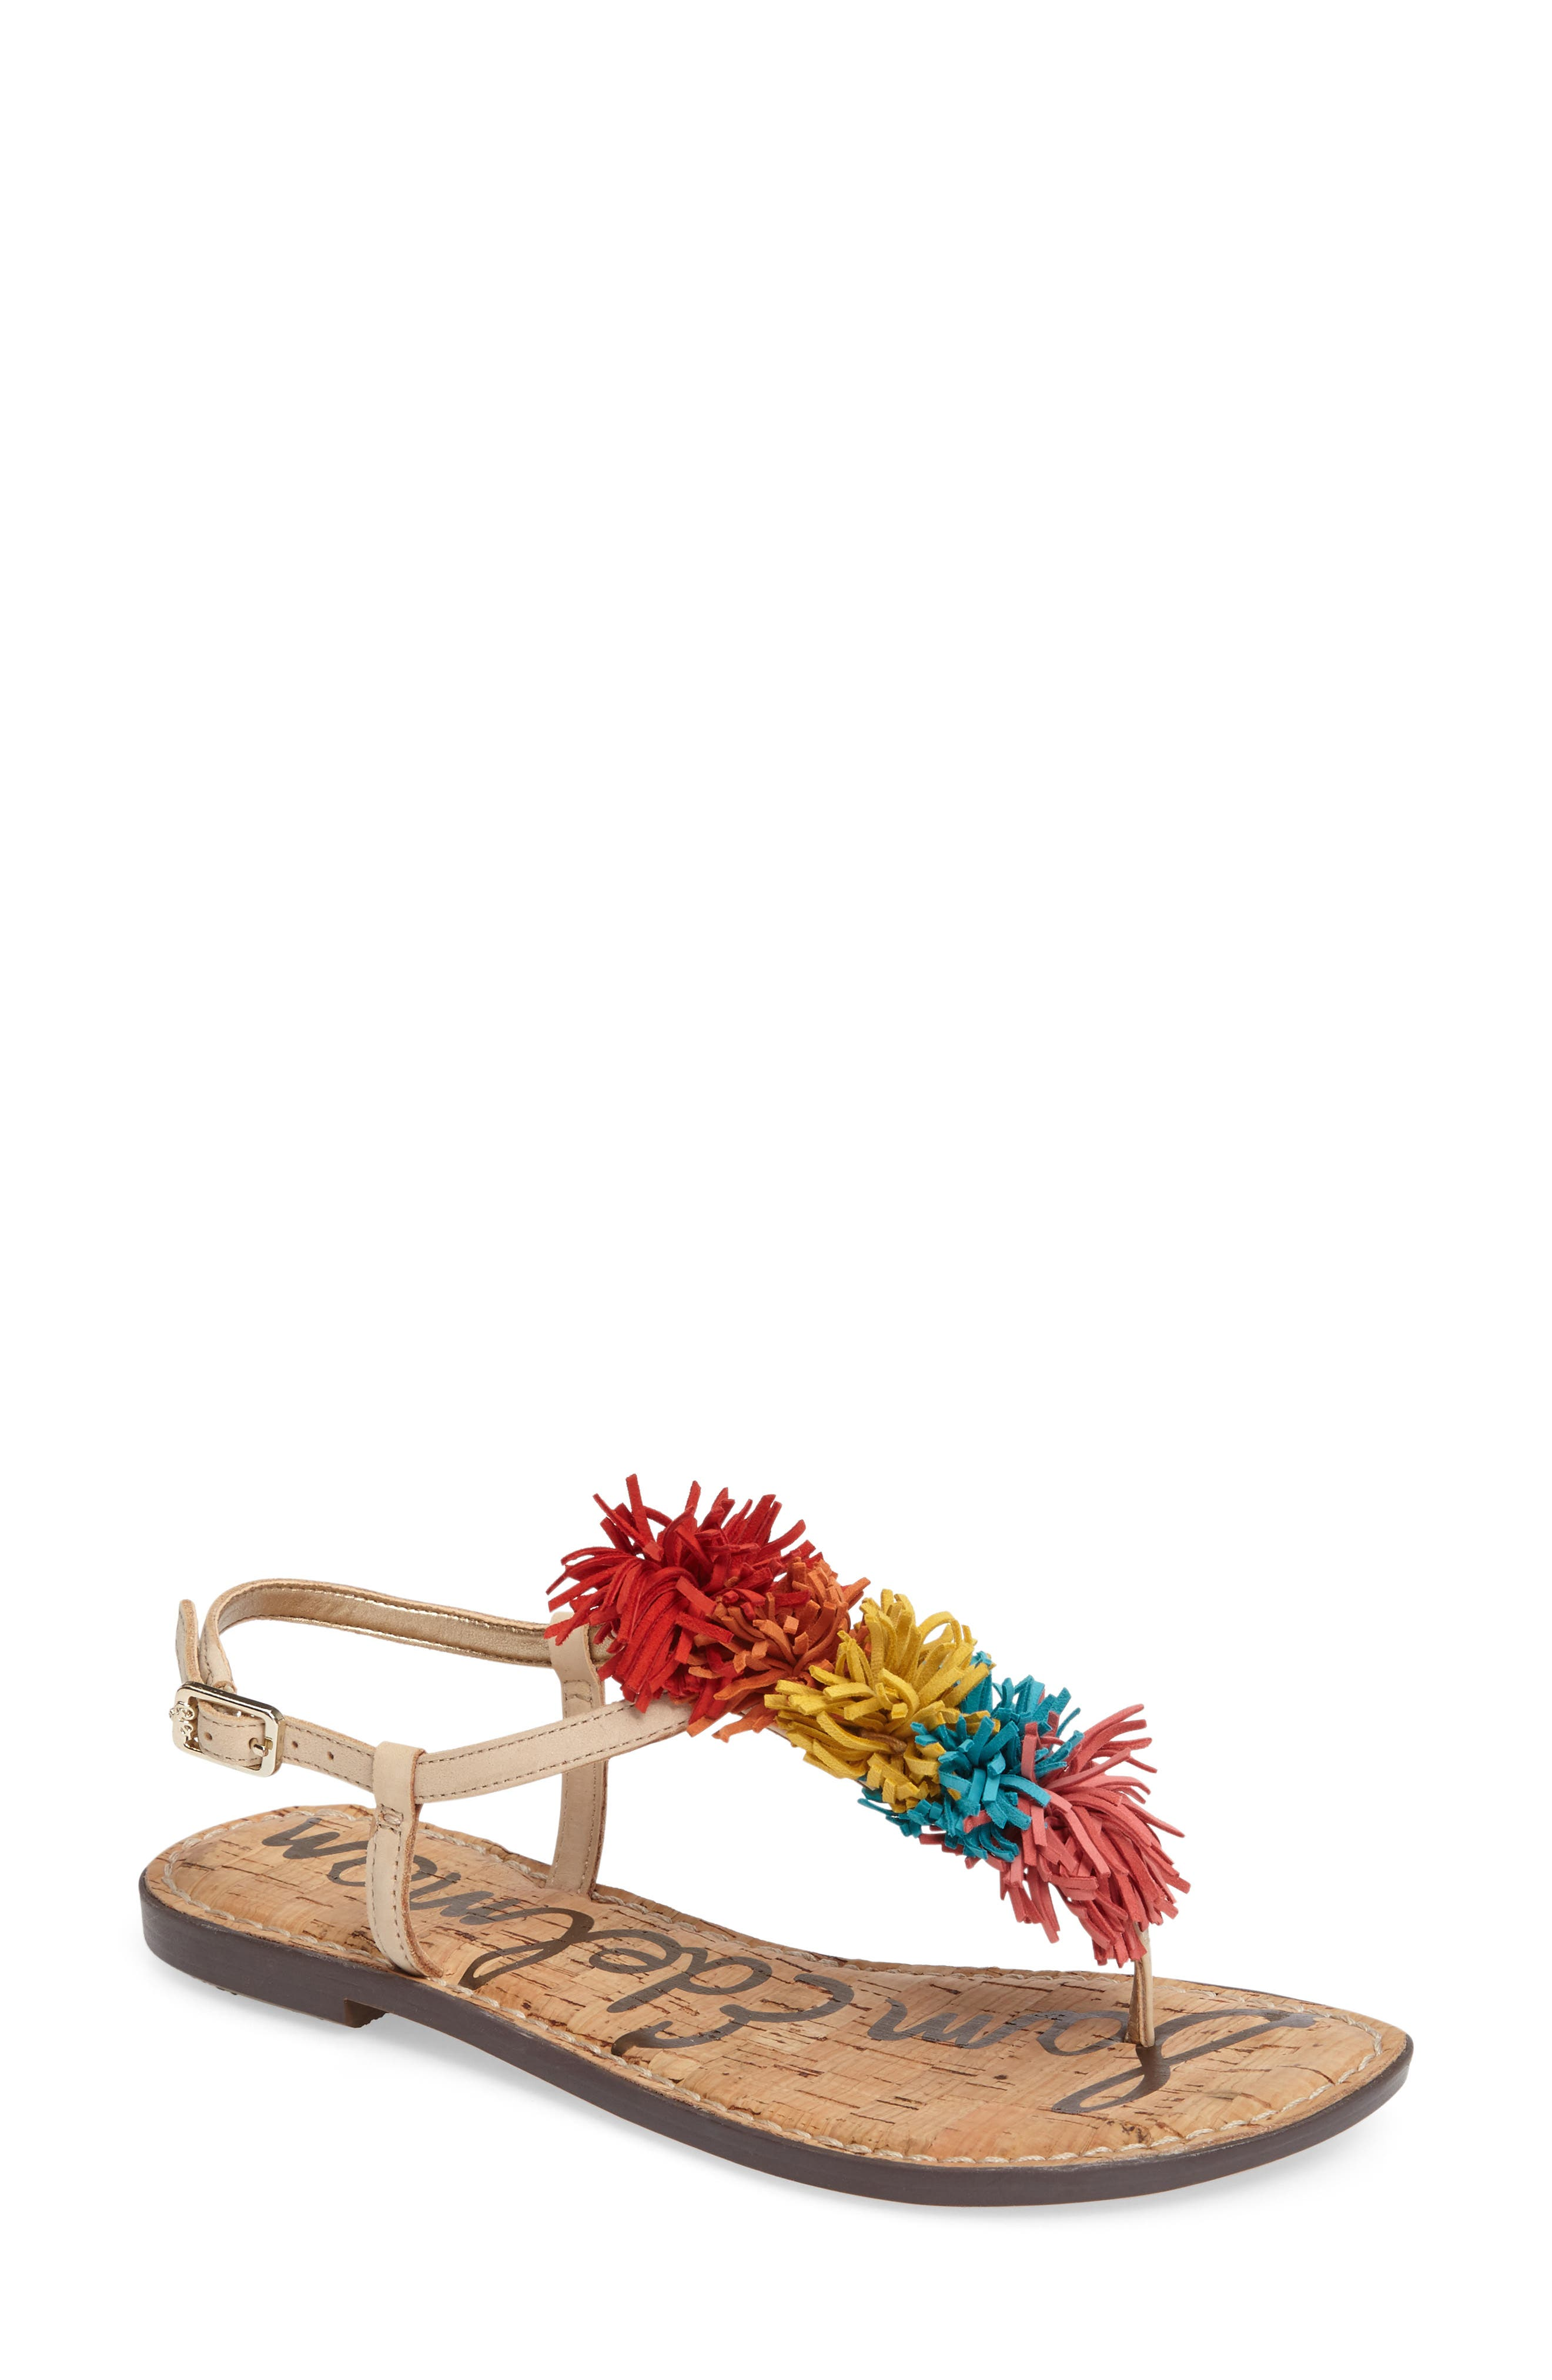 Alternate Image 1 Selected - Sam Edelman Gates Sandal (Women)